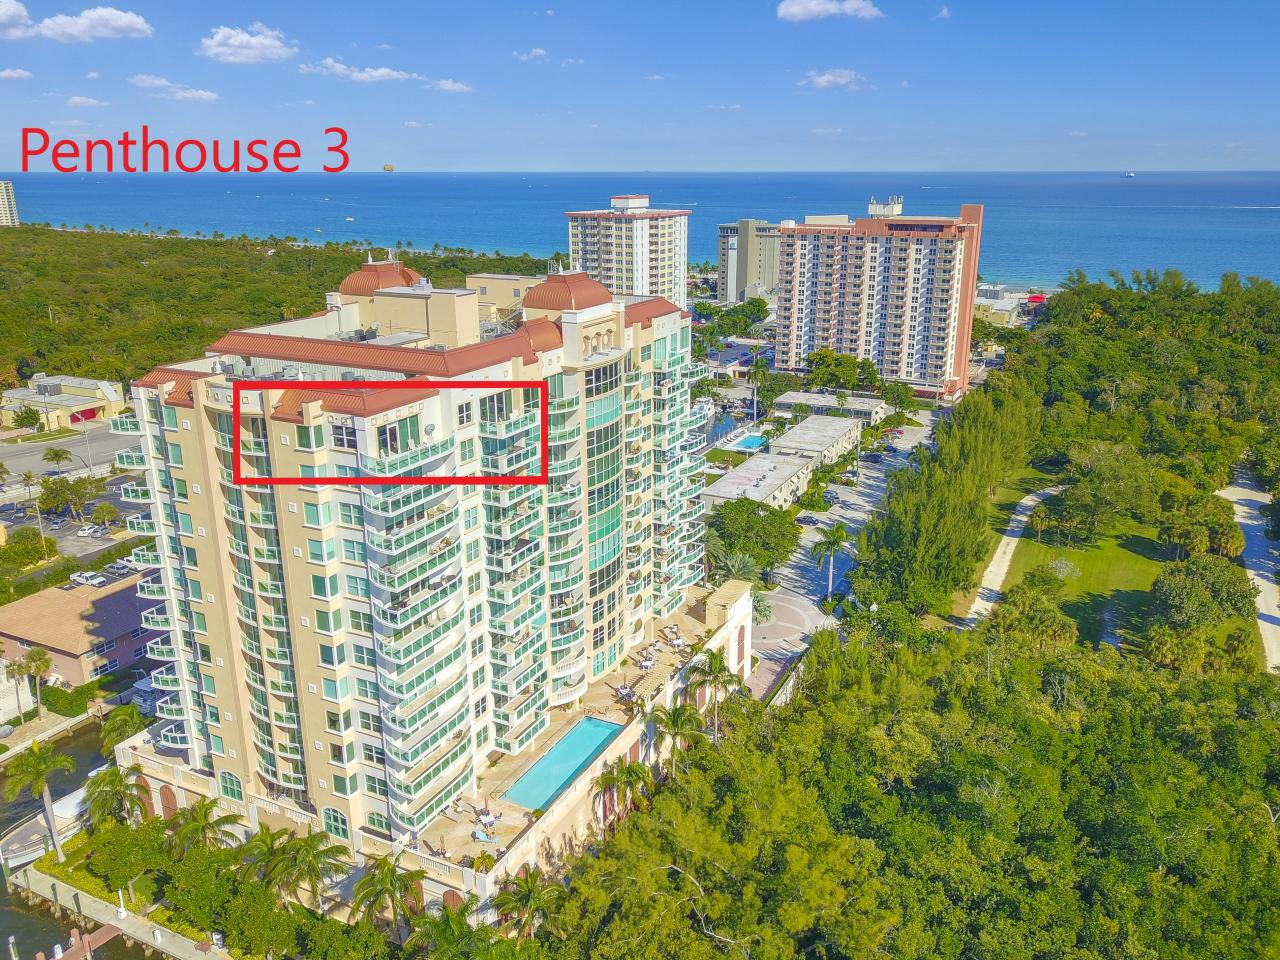 Aerial View of Penthouse 3 with Premier Southern Exposure Along the Intracoastal